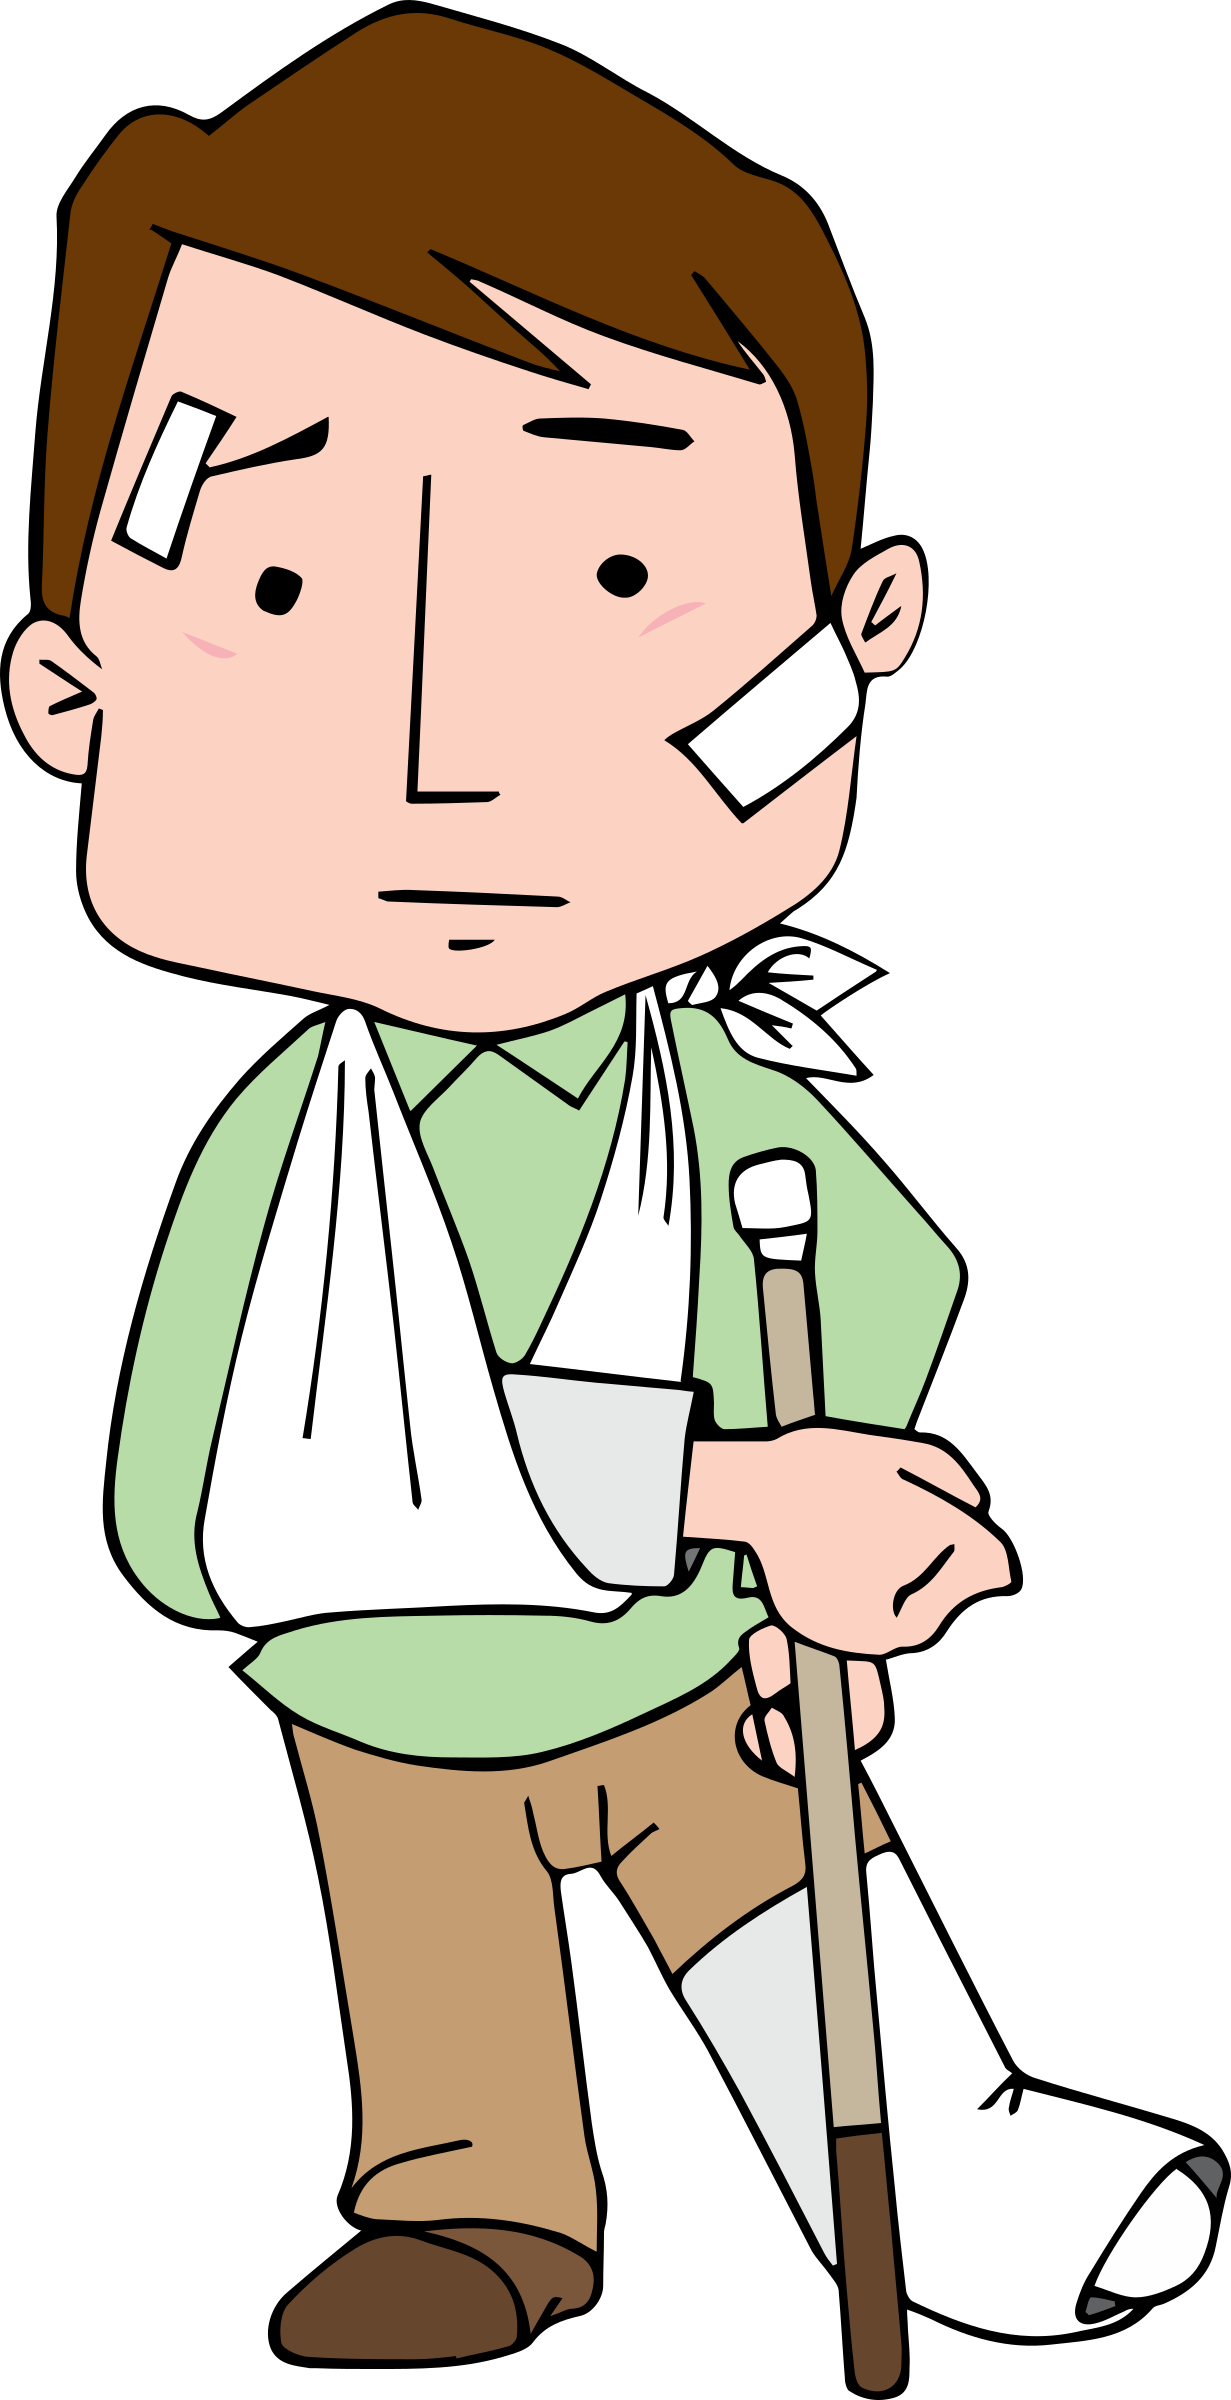 jpg free library Injured big image png. Hurt clipart